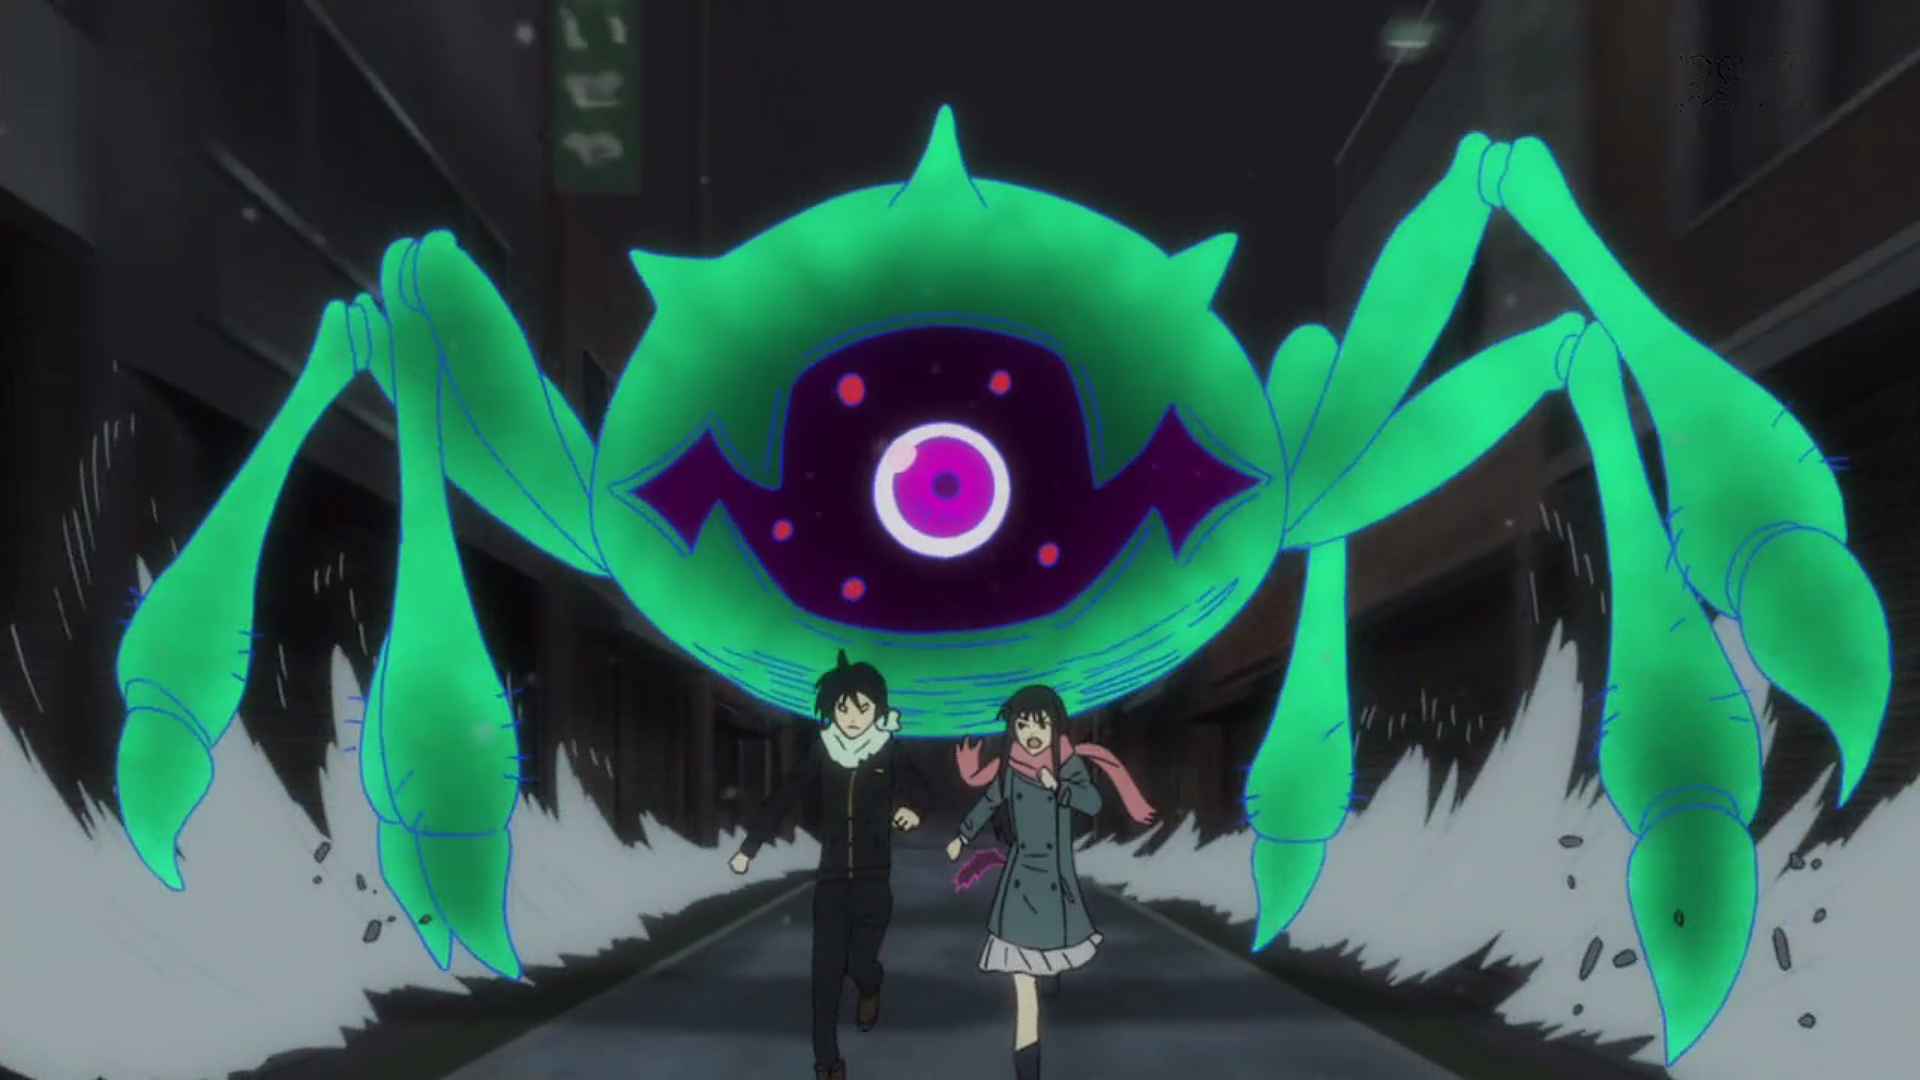 Yato_and_Hiyori_being_chased